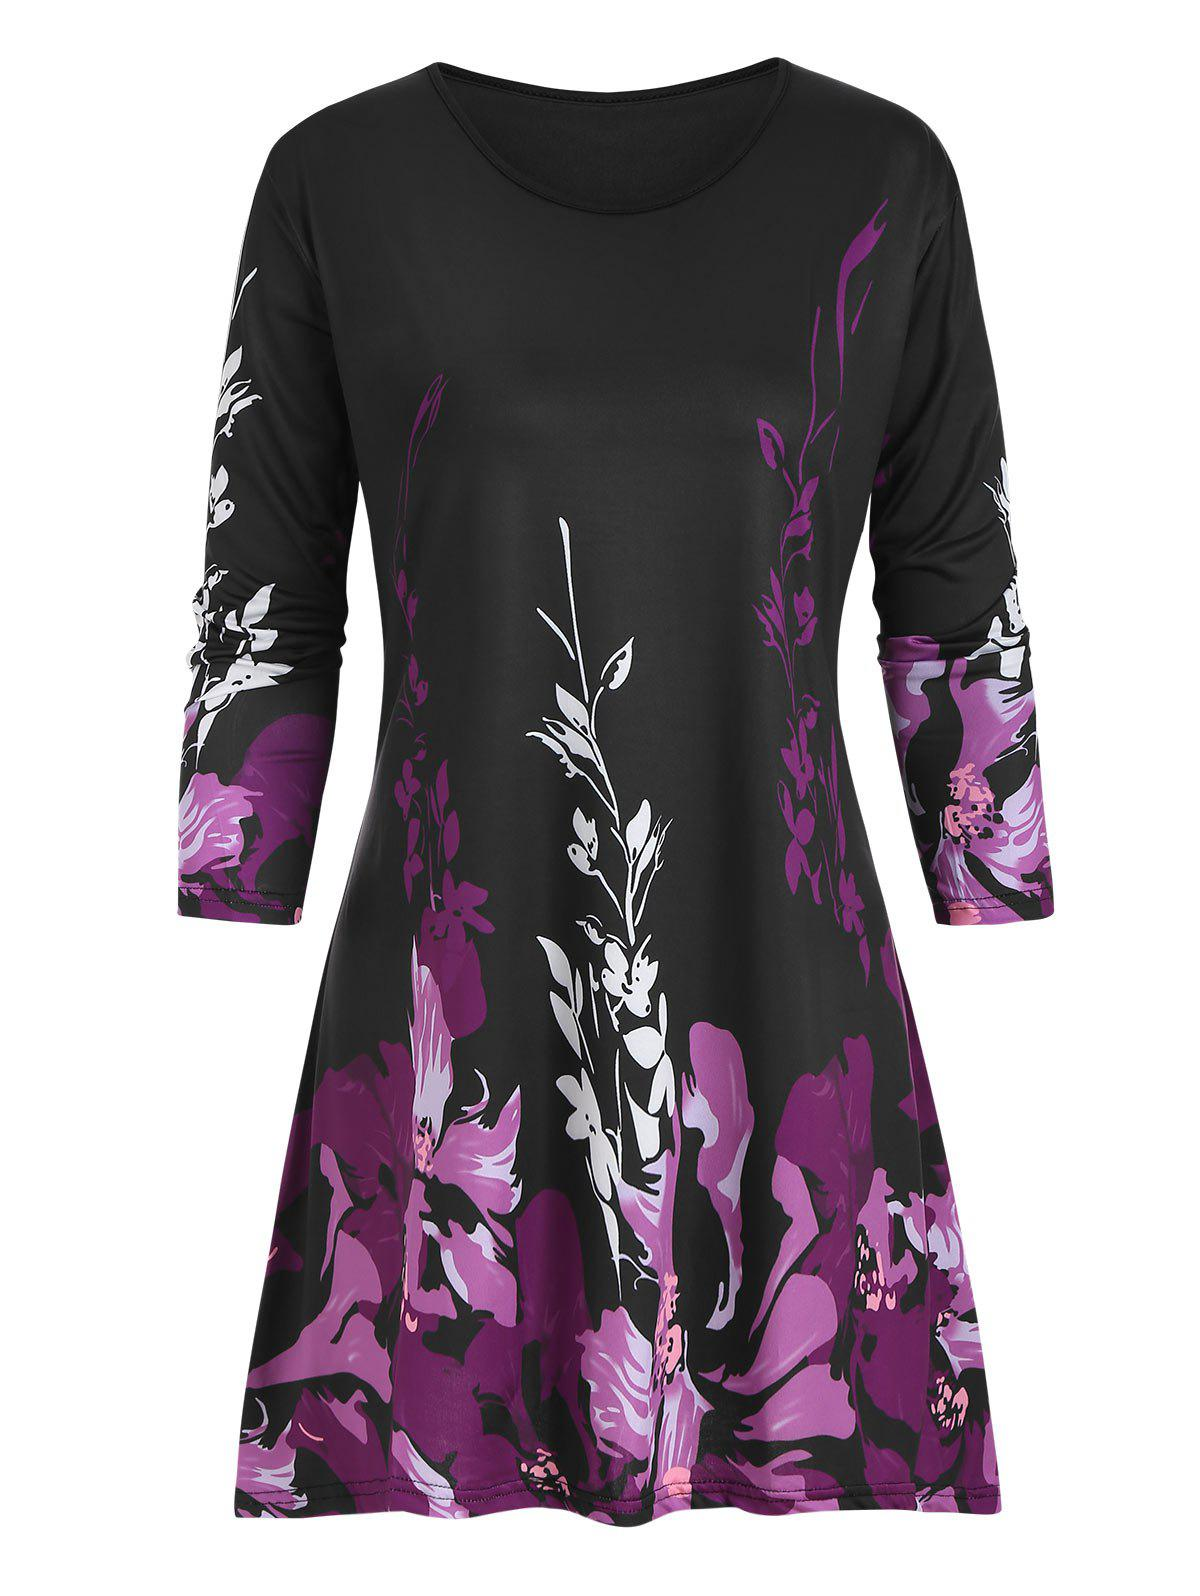 Floral Plus Size Three Quarter Sleeve Tunic Top - PURPLE 5X